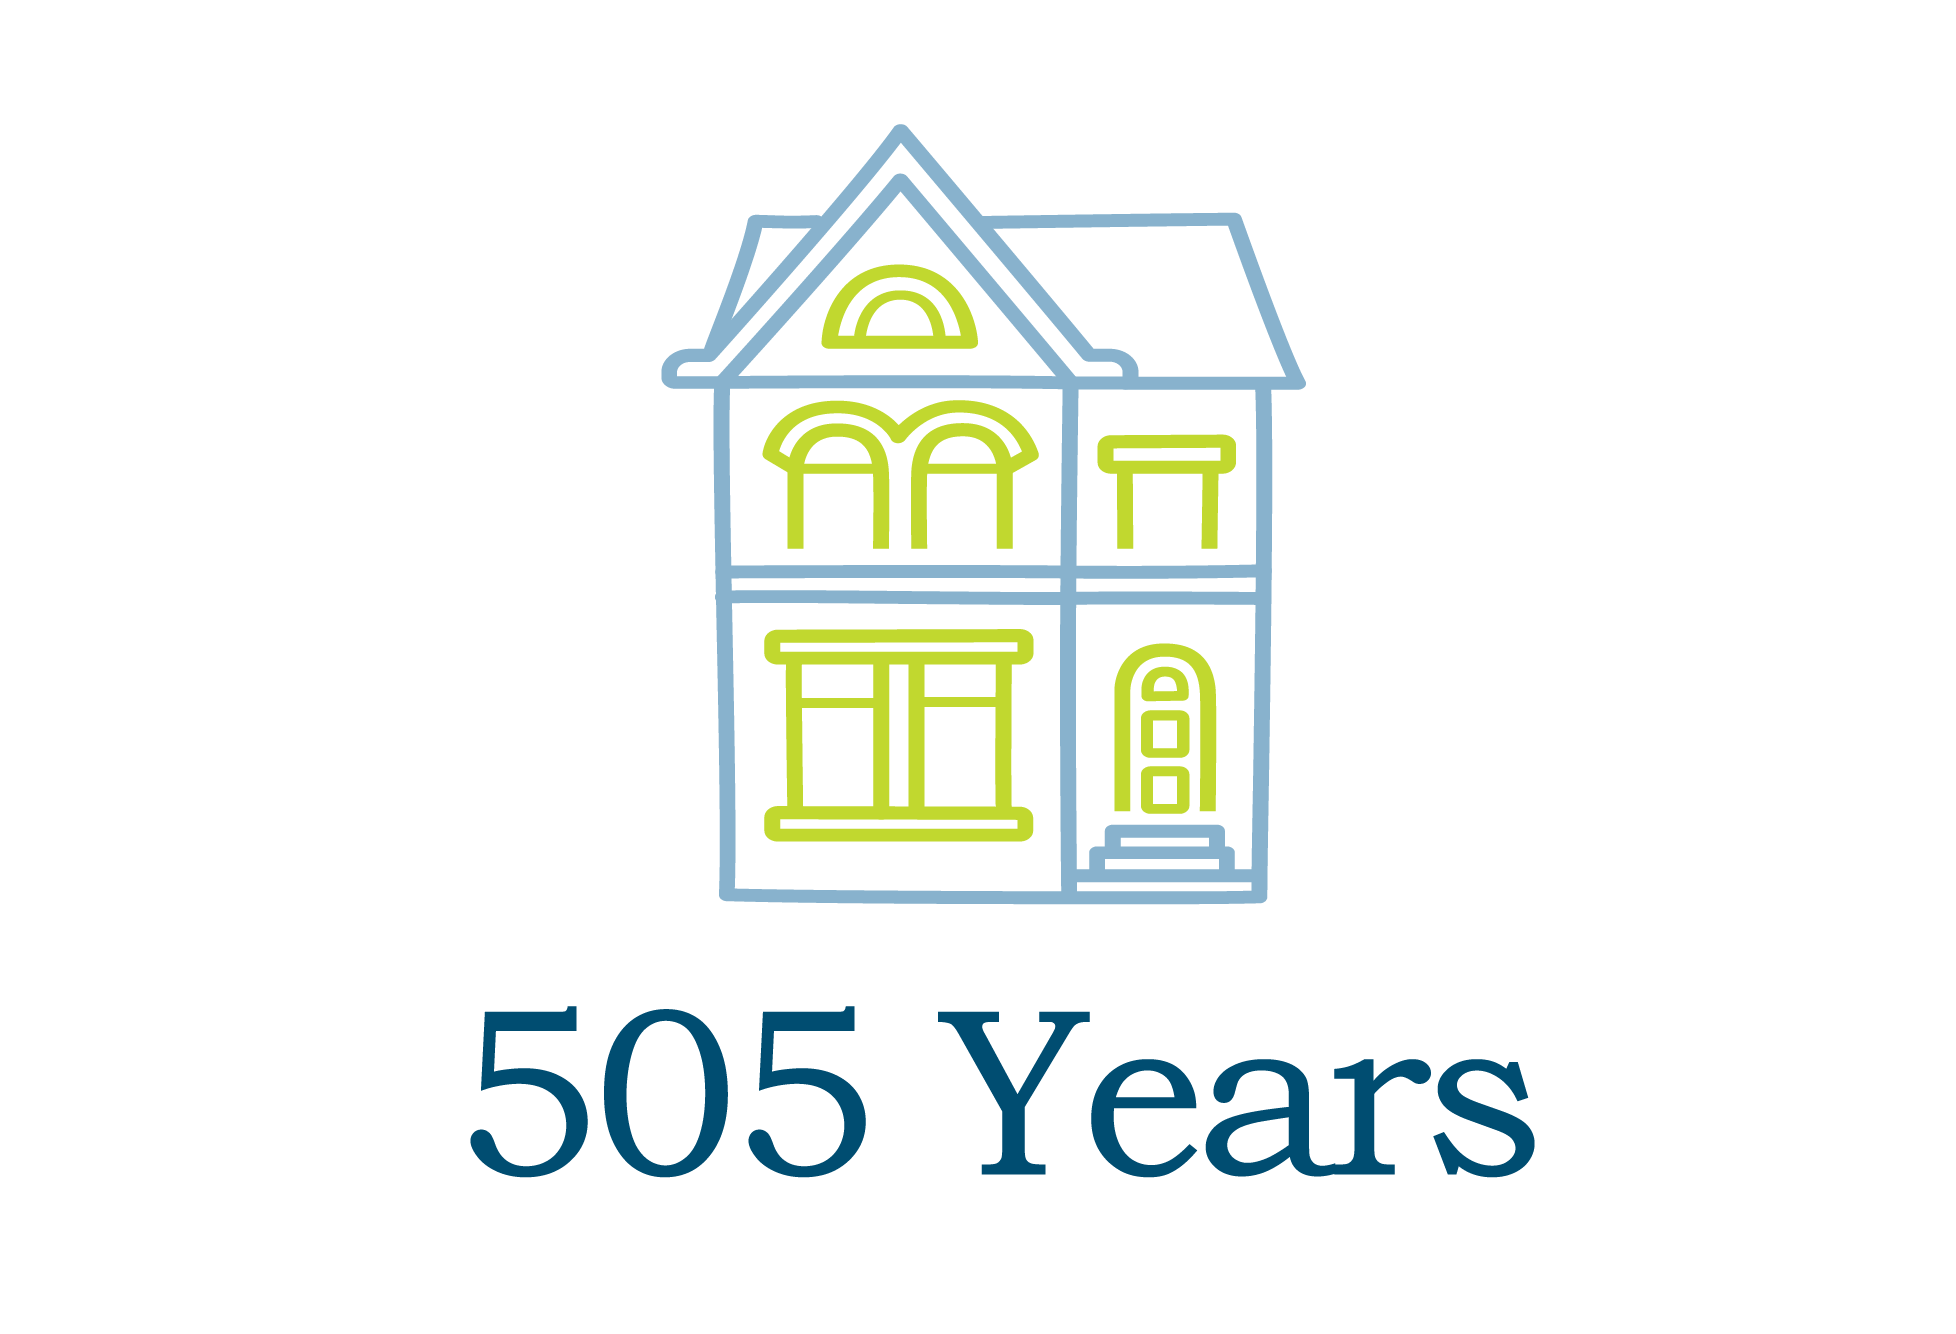 Combined age of DD&F's office buildings is 505 years